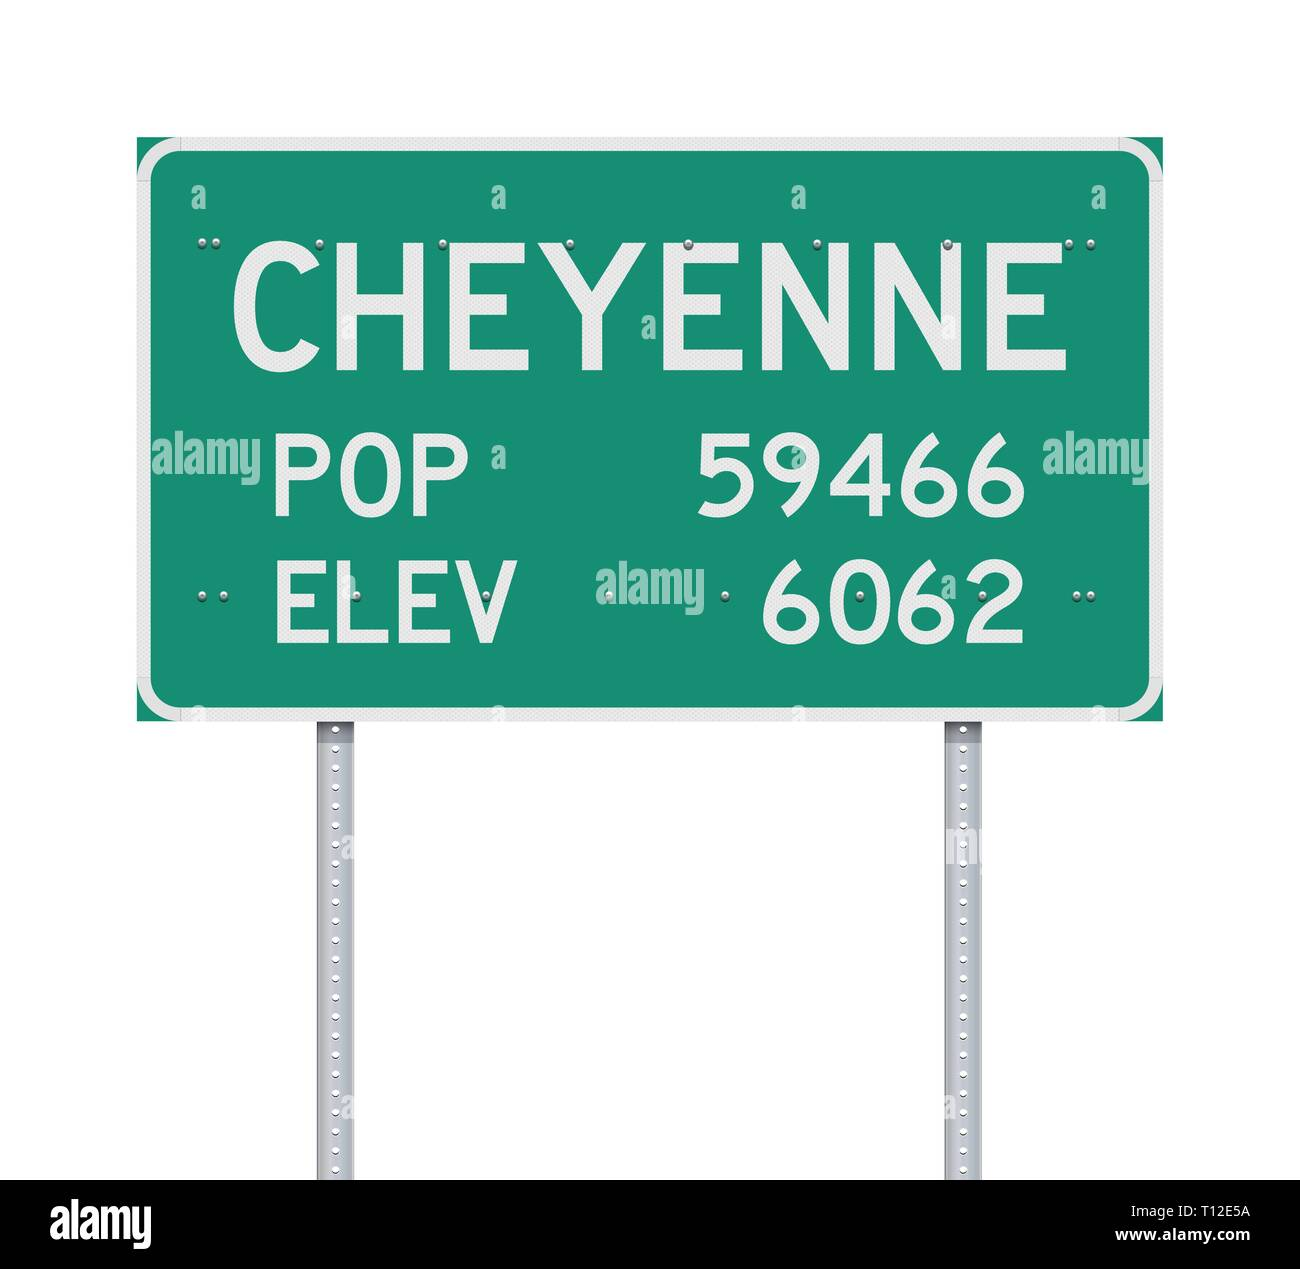 Vector illustration of the Cheyenne Population and Elevation green road sign - Stock Image